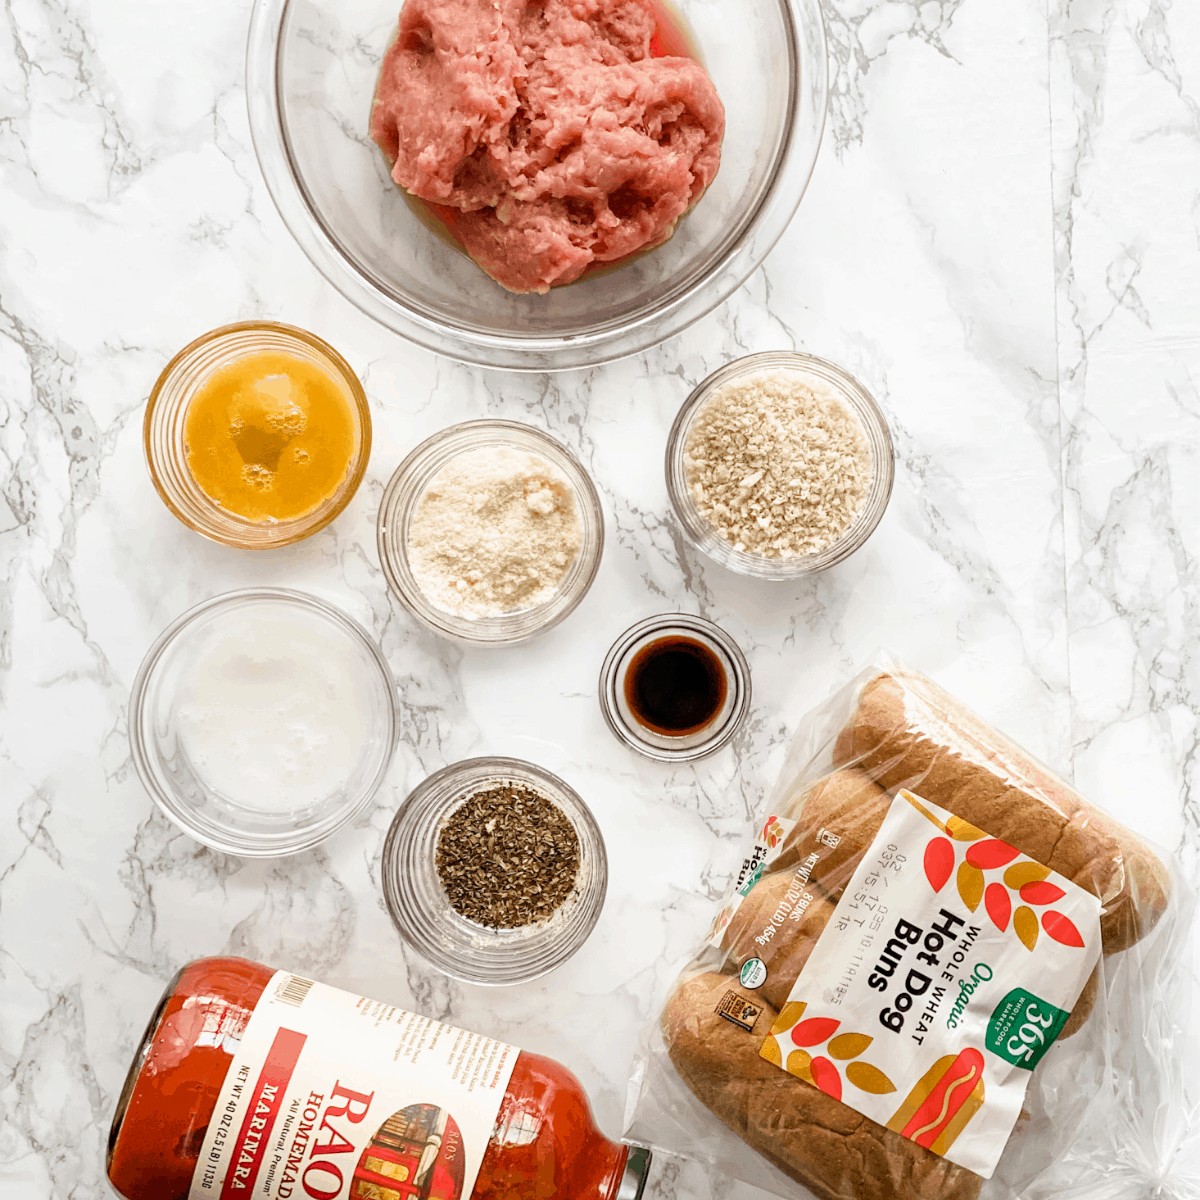 ingredients for turkey meatball subs.